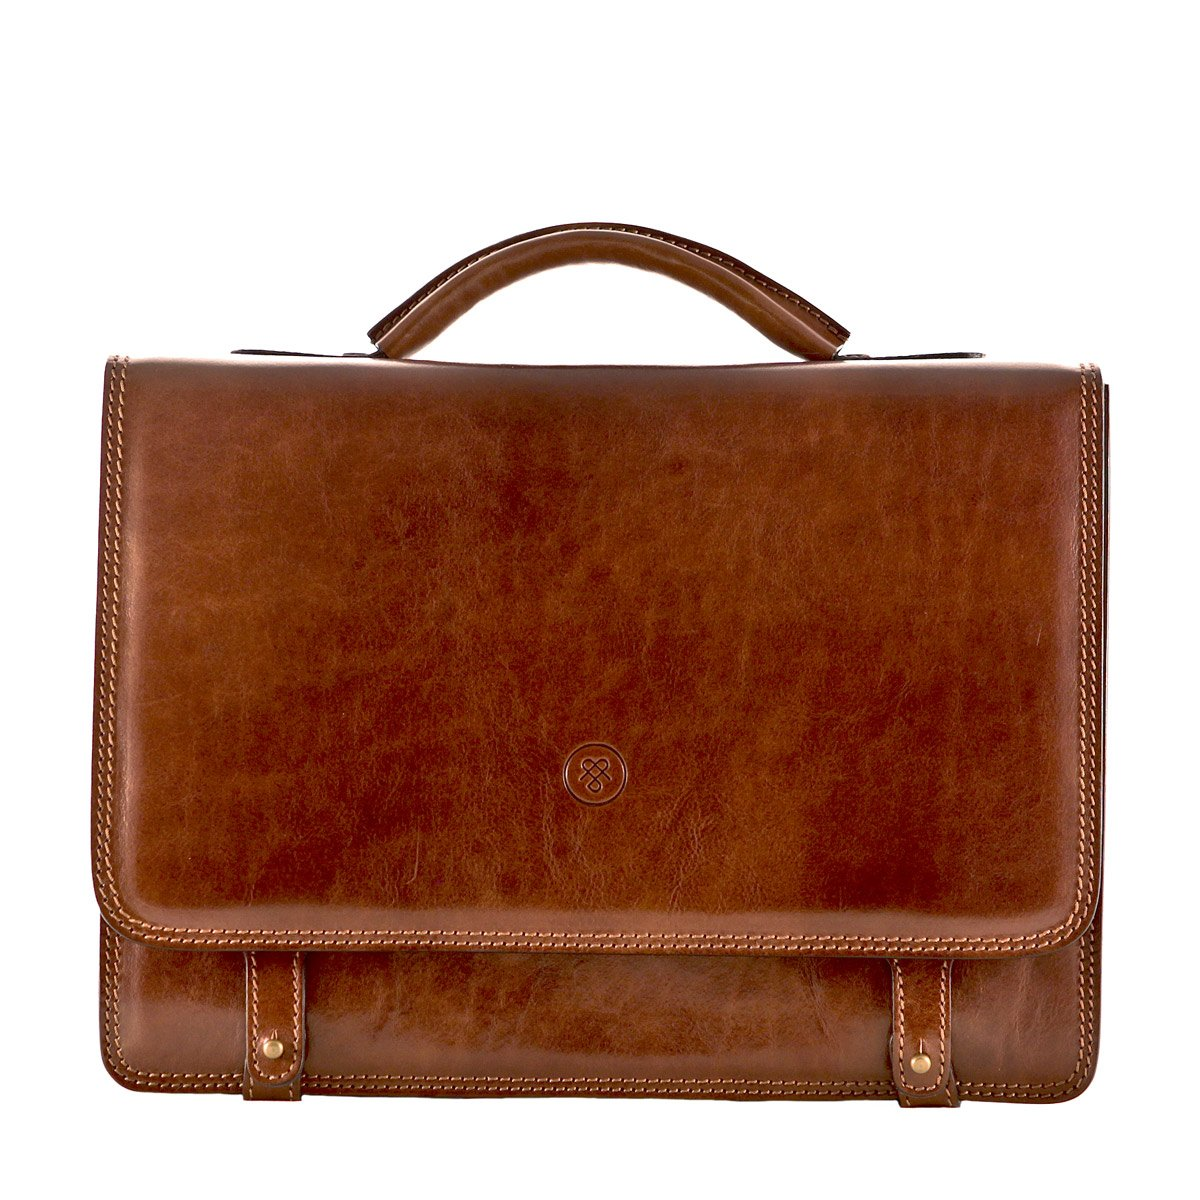 Maxwell Scott Personalized Luxury Tan Mens Leather Satchels (The Battista) - One Size by Maxwell Scott Bags (Image #1)